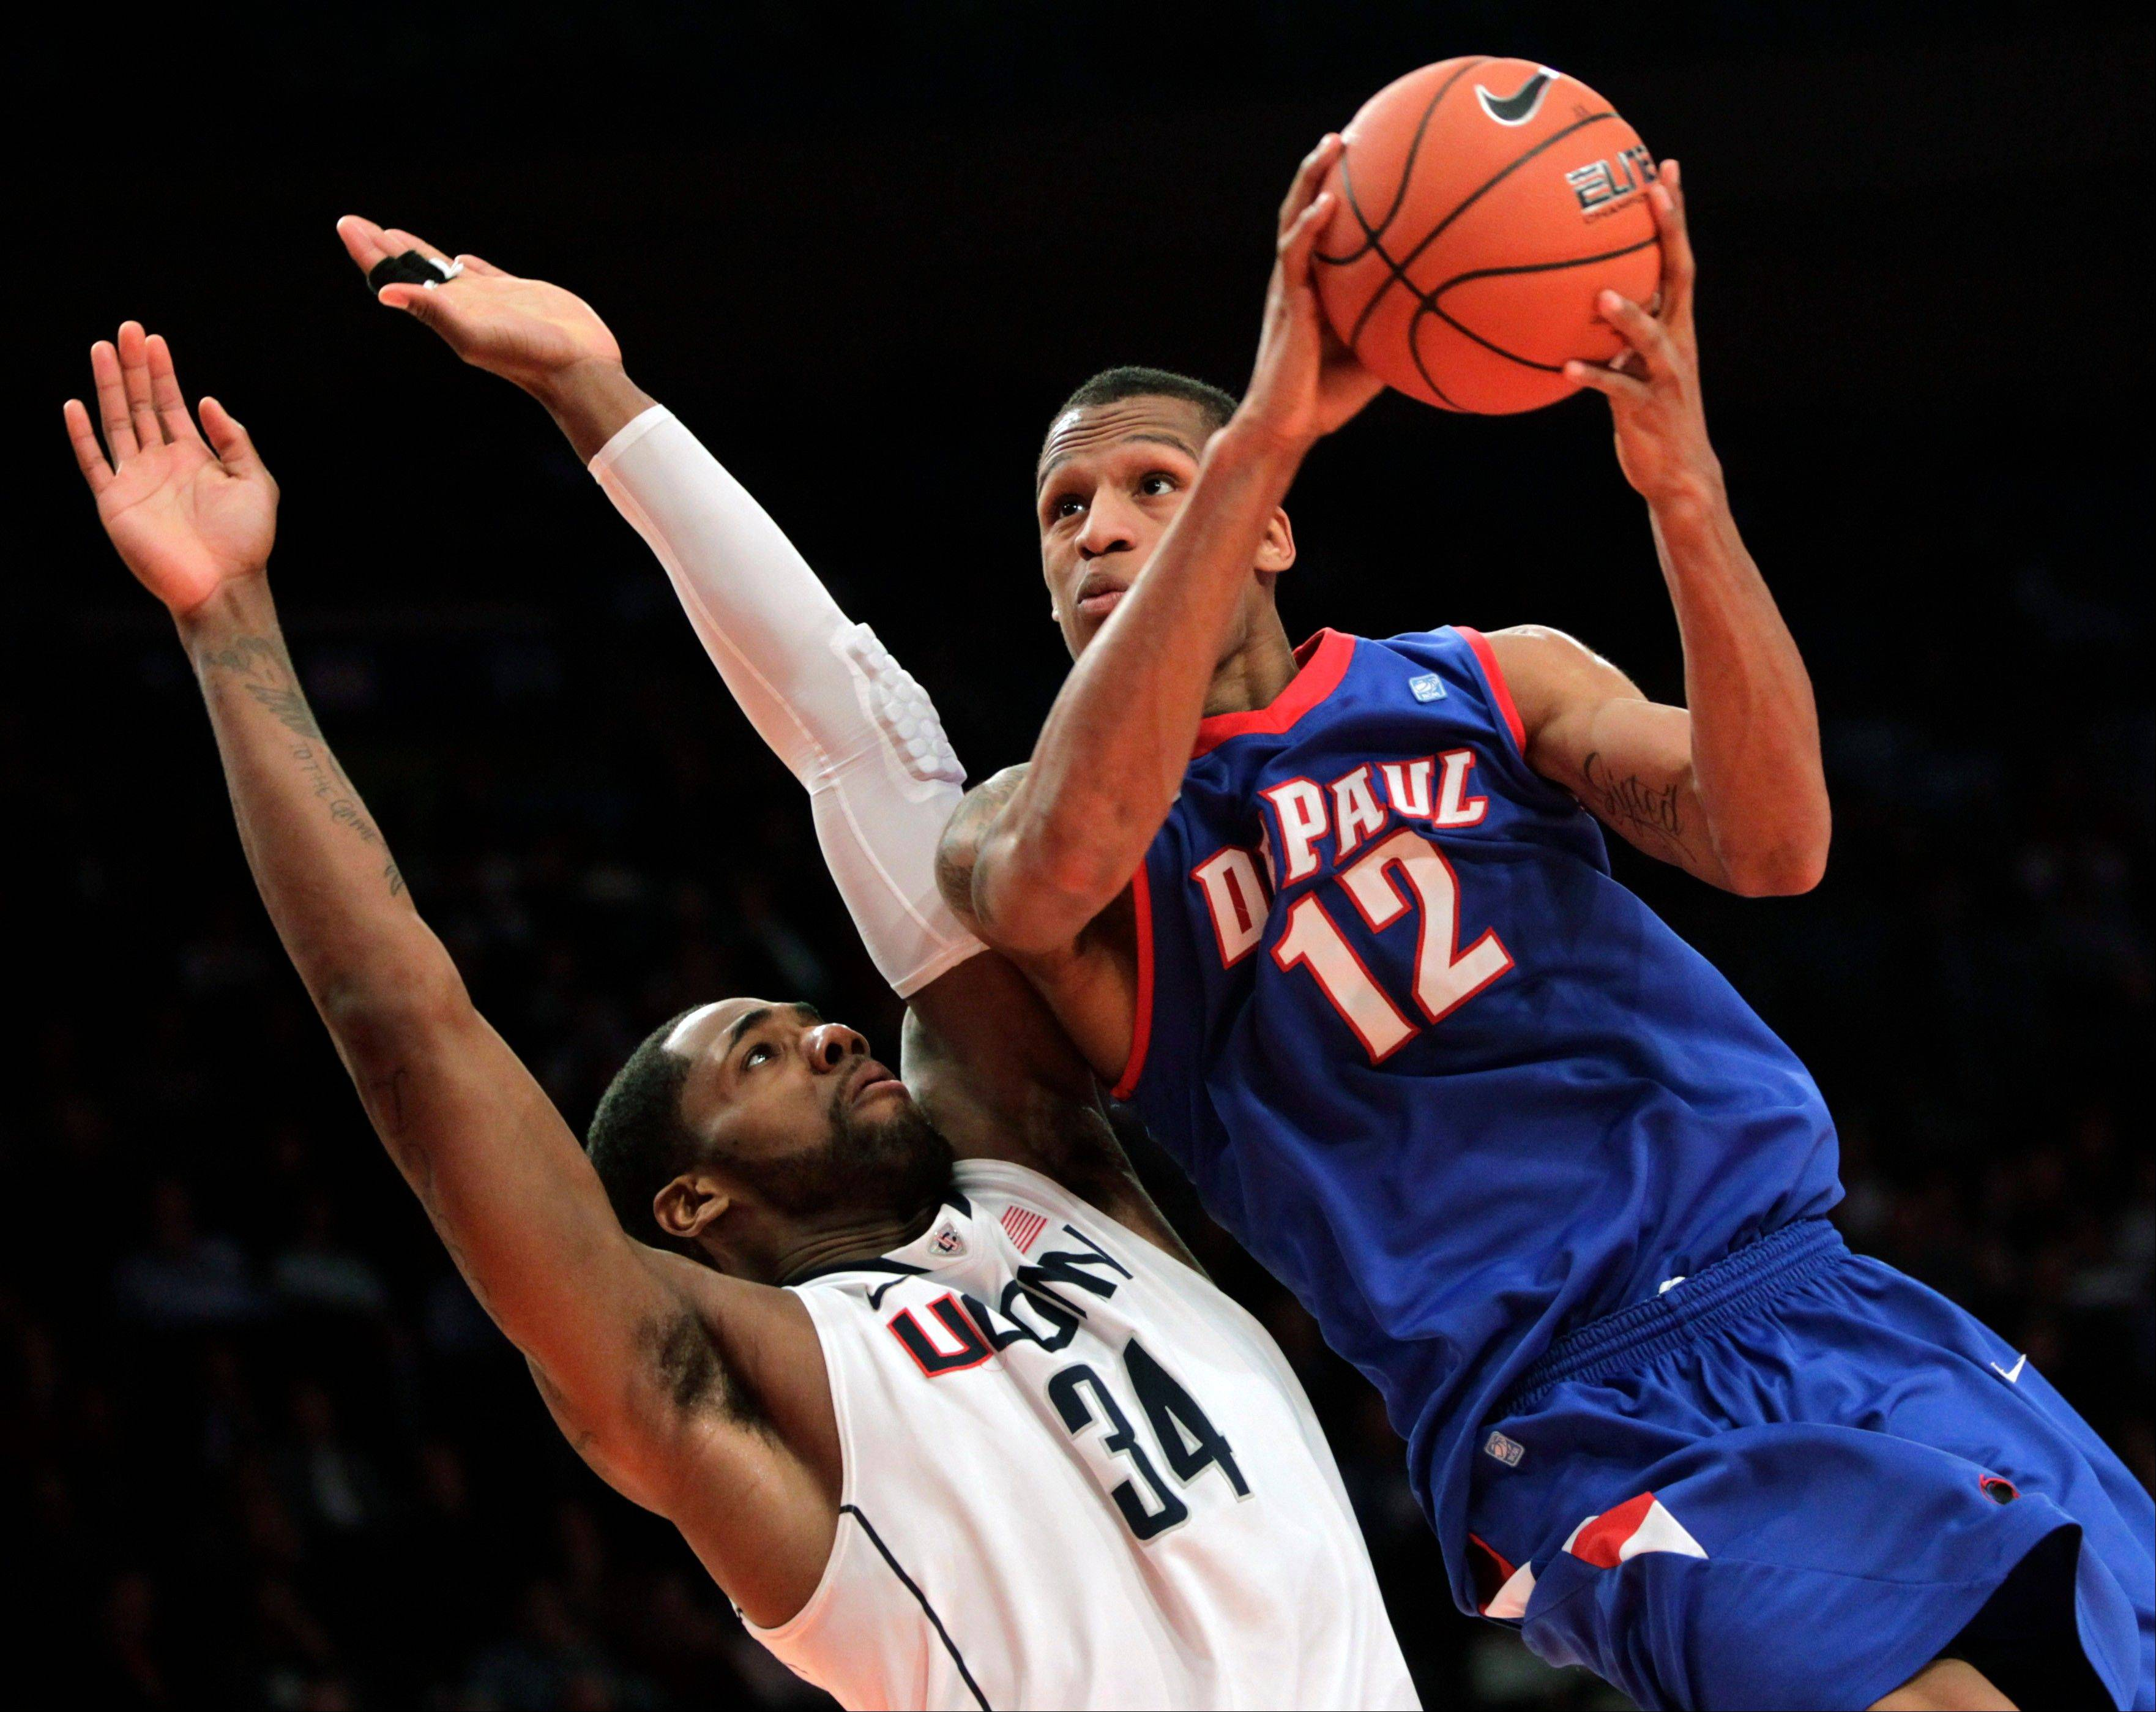 DePaul�s Cleveland Melvin is the top returning scorer in the Big East this season.